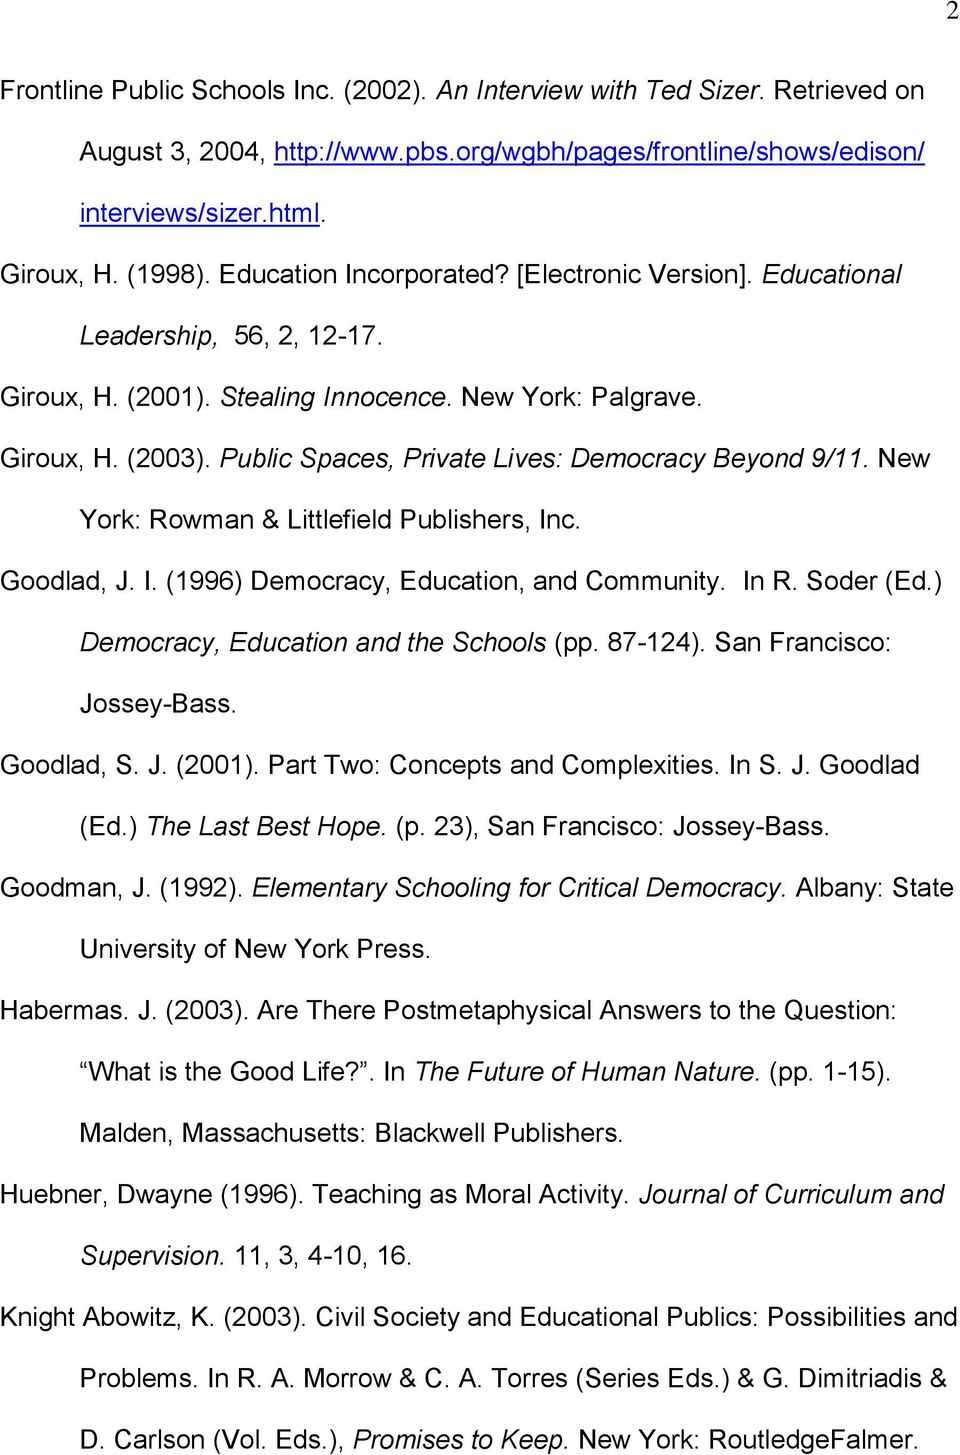 Public Spaces, Private Lives: Democracy Beyond 9/11. New York: Rowman & Littlefield Publishers, Inc. Goodlad, J. I. (1996) Democracy, Education, and Community. In R. Soder (Ed.